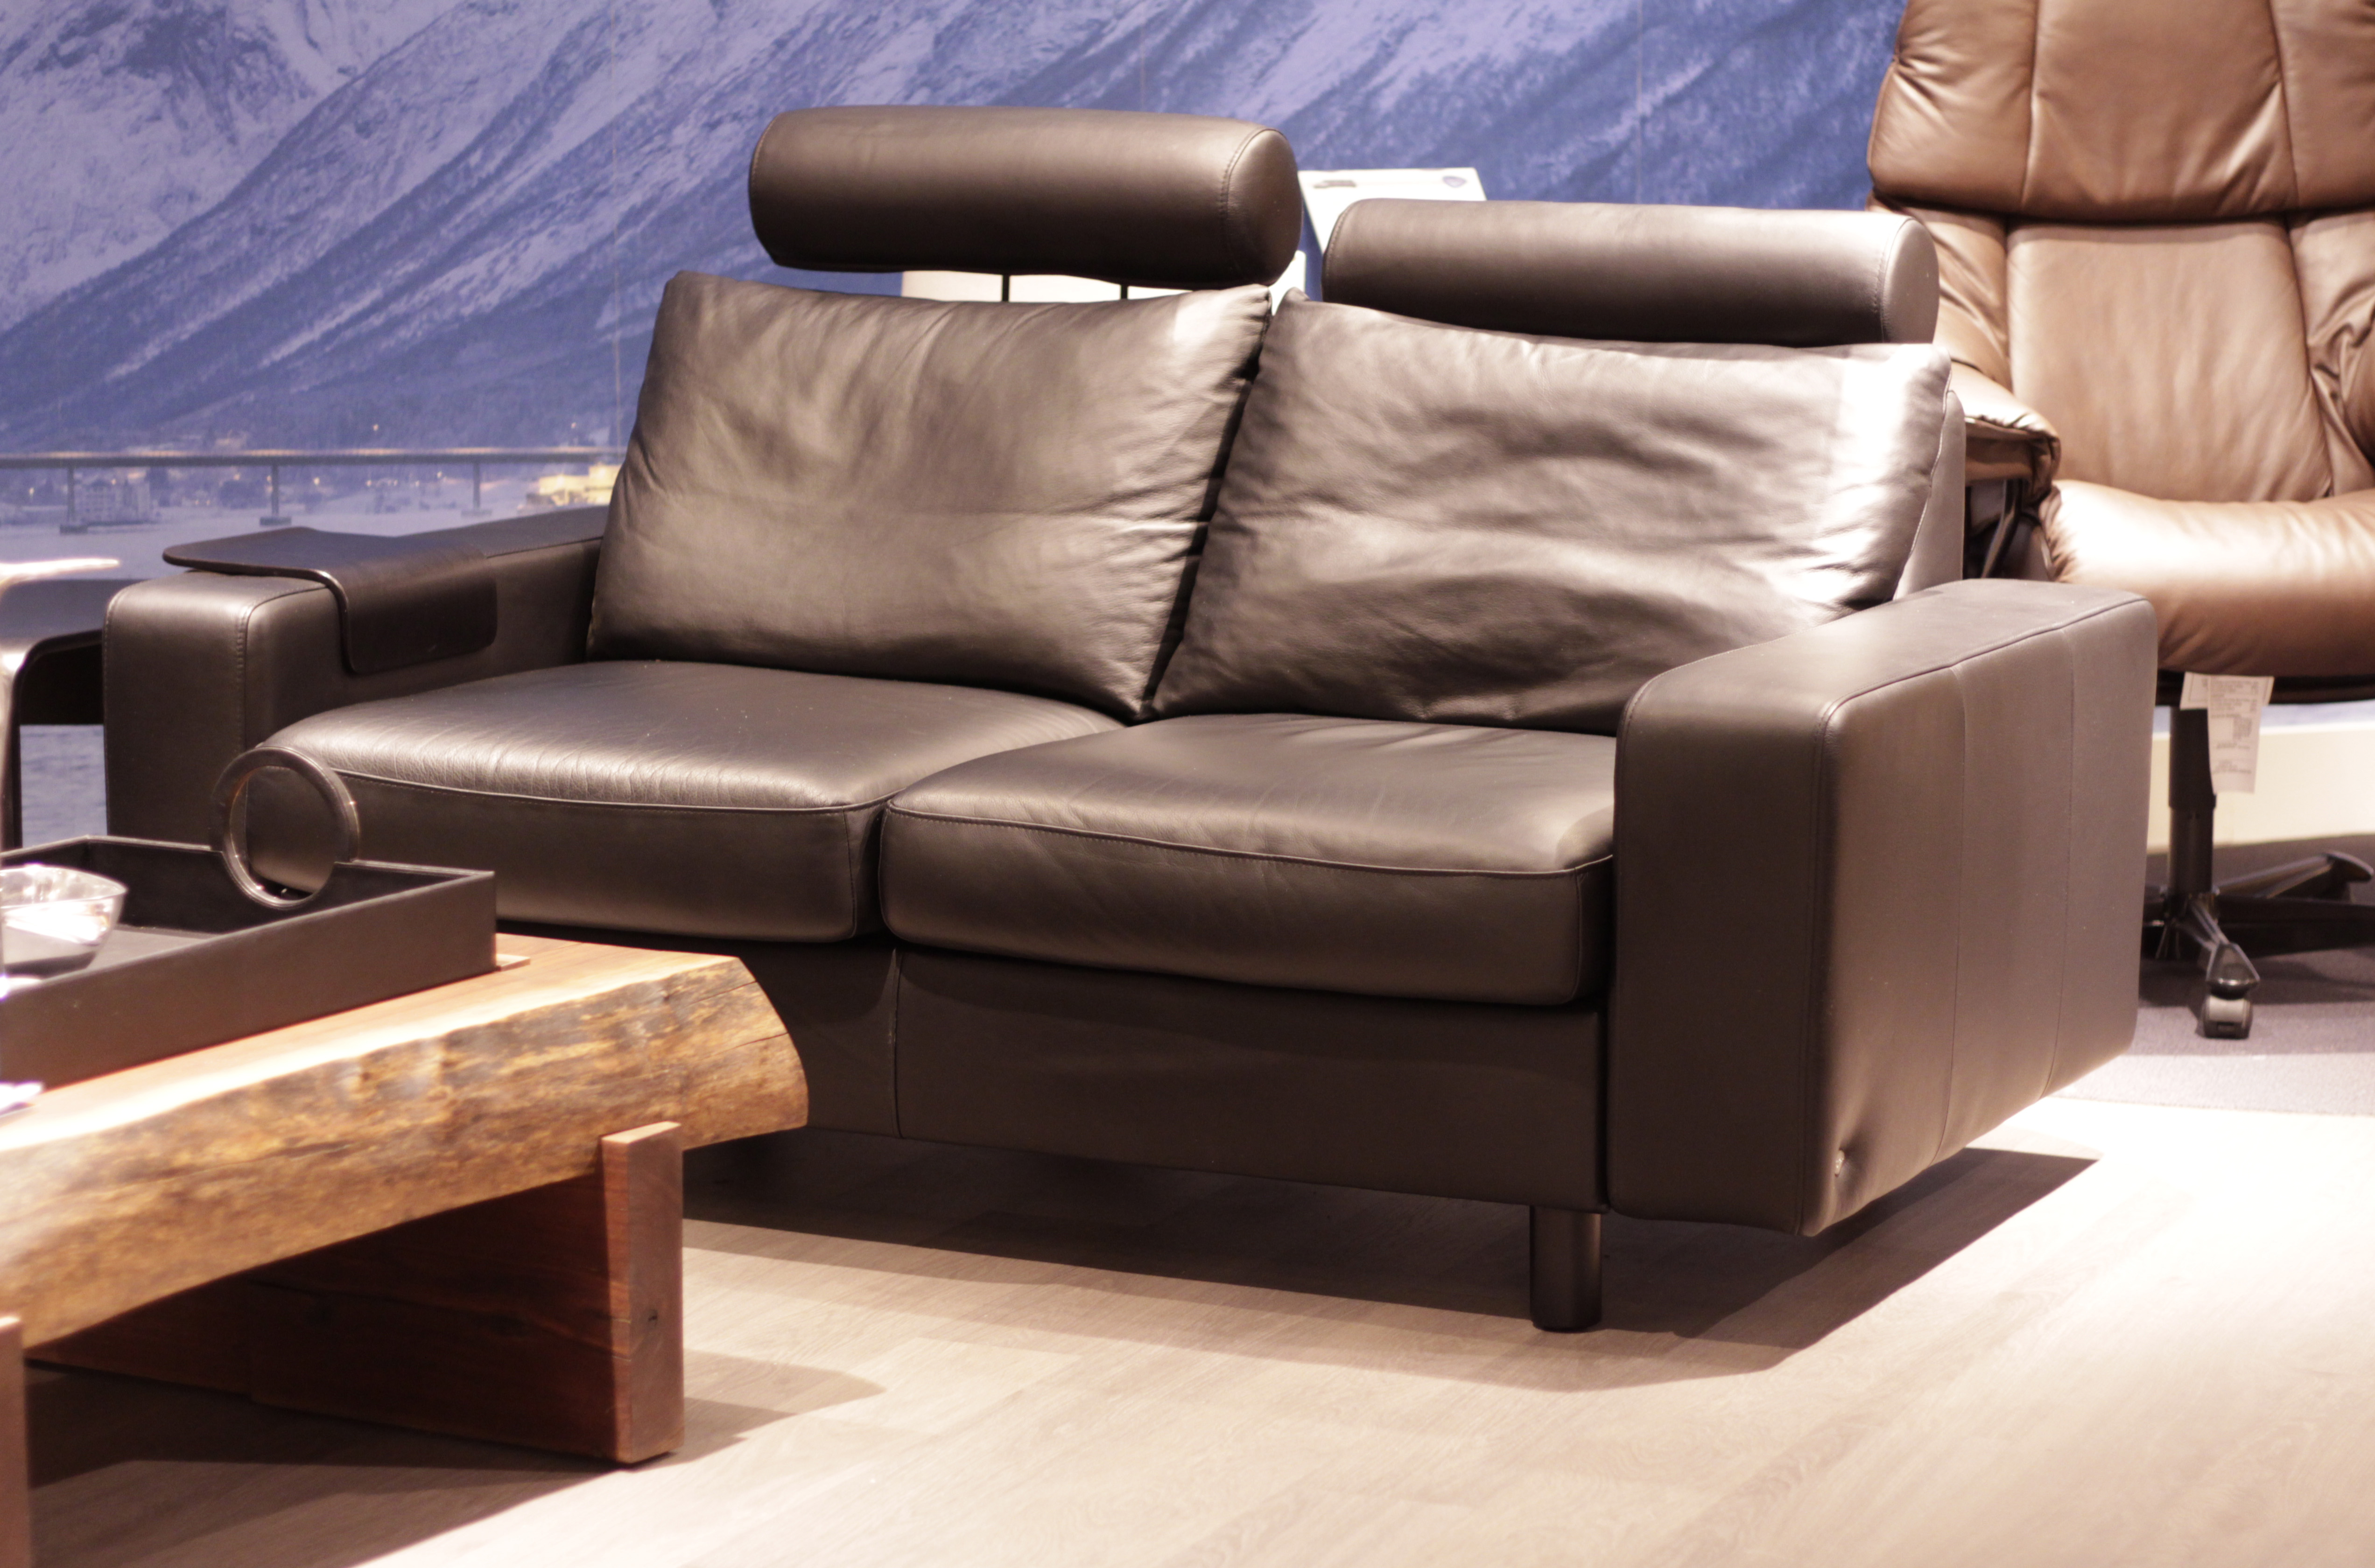 Stressless Sofa 600 Stressless E200 Loveseat Sofa In Paloma Rock Leather By Ekornes